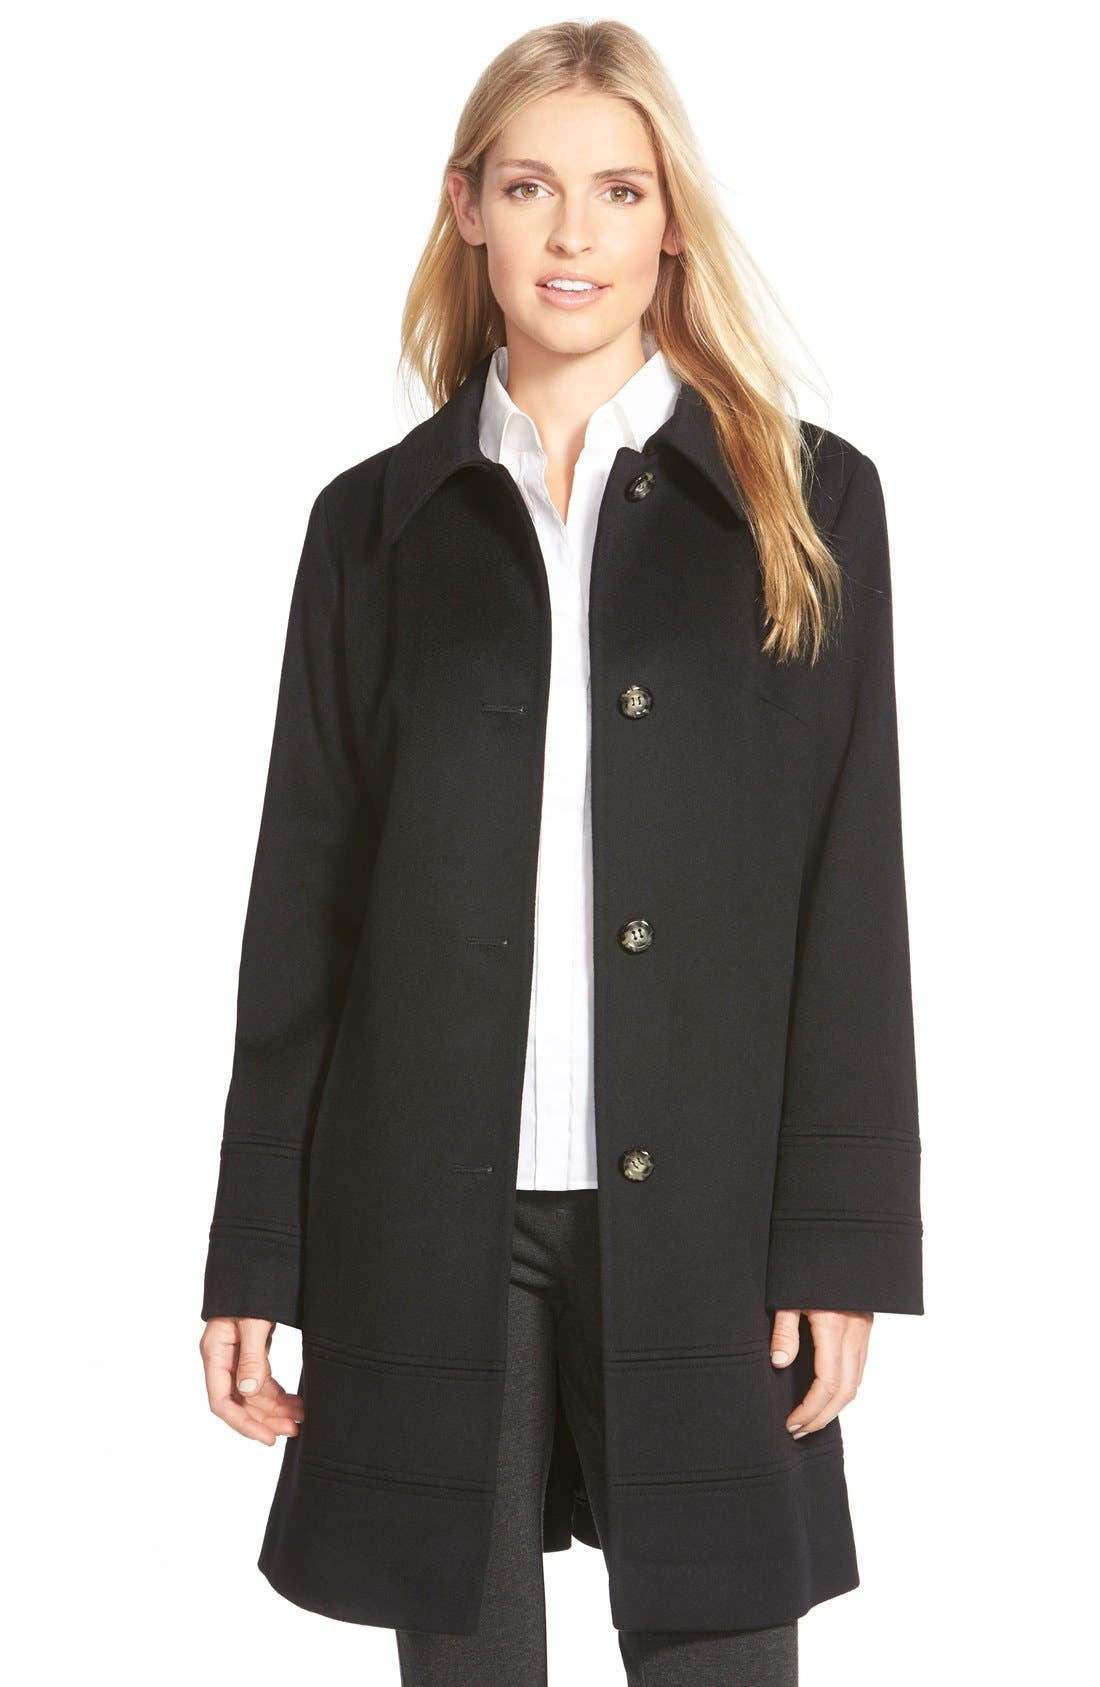 Alternate Image 1 Selected - Fleurette Wool Spread Collar Coat (Regular & Petite)